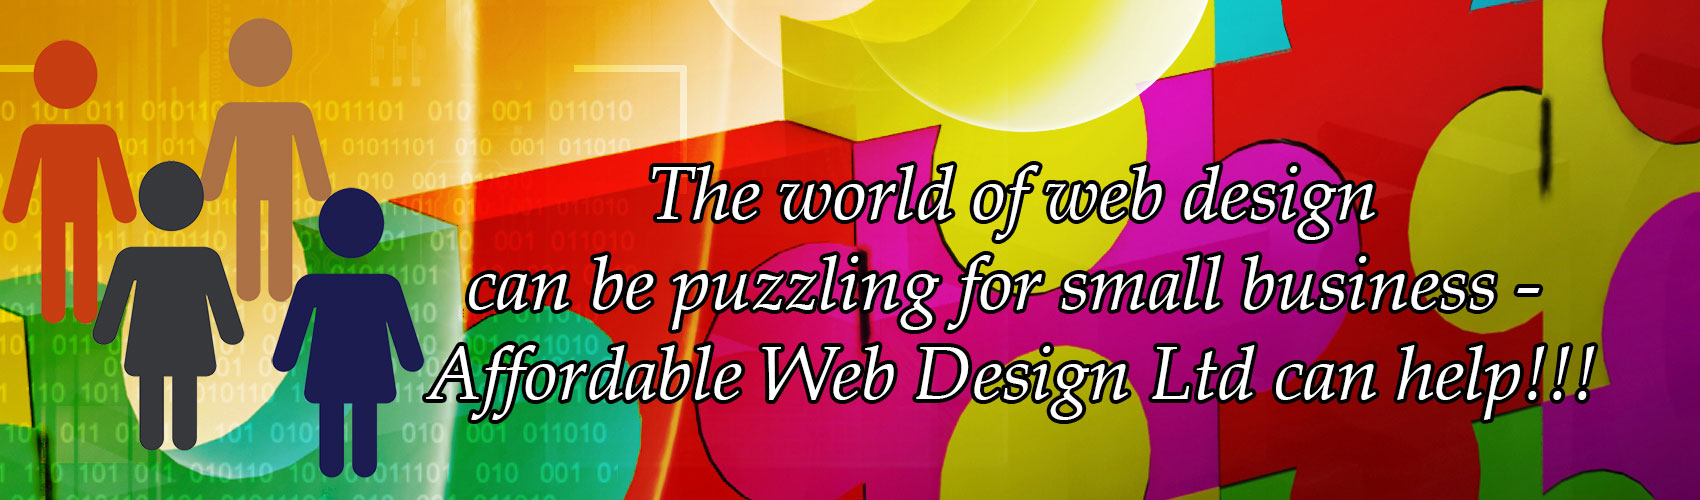 Affordable Web Network is a division of Affordable Web Design Ltd, offering great prices for all your web development.